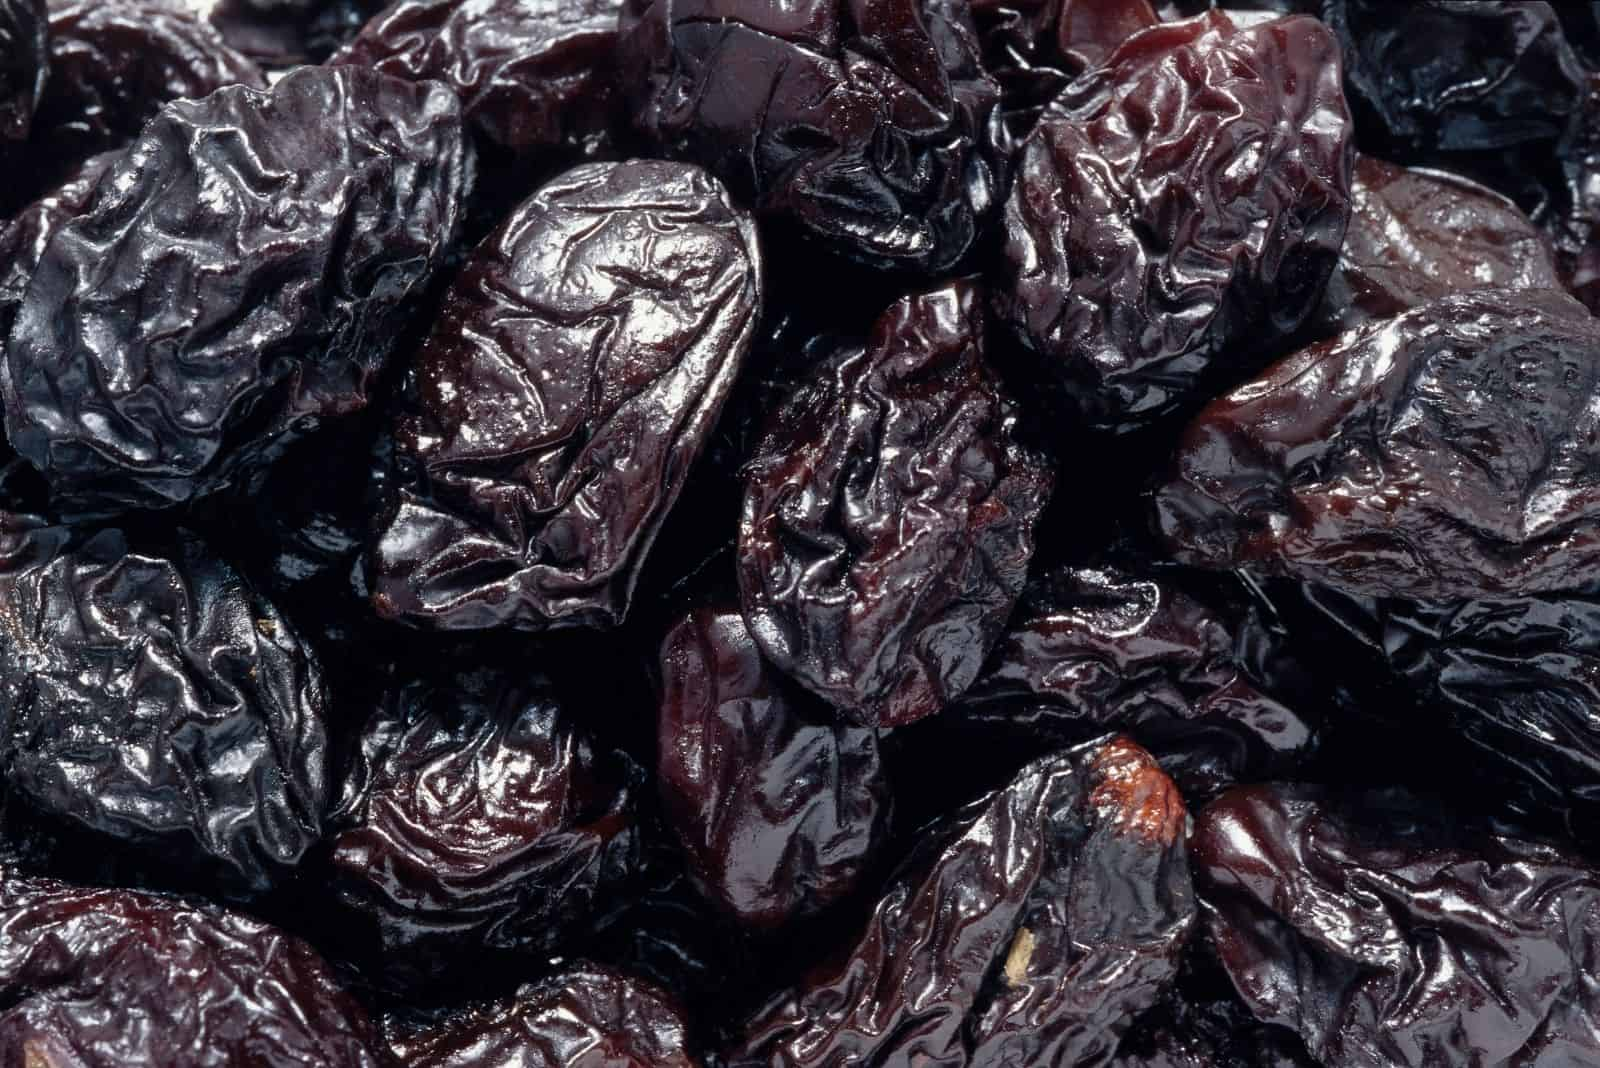 dried black prunes in close up photography